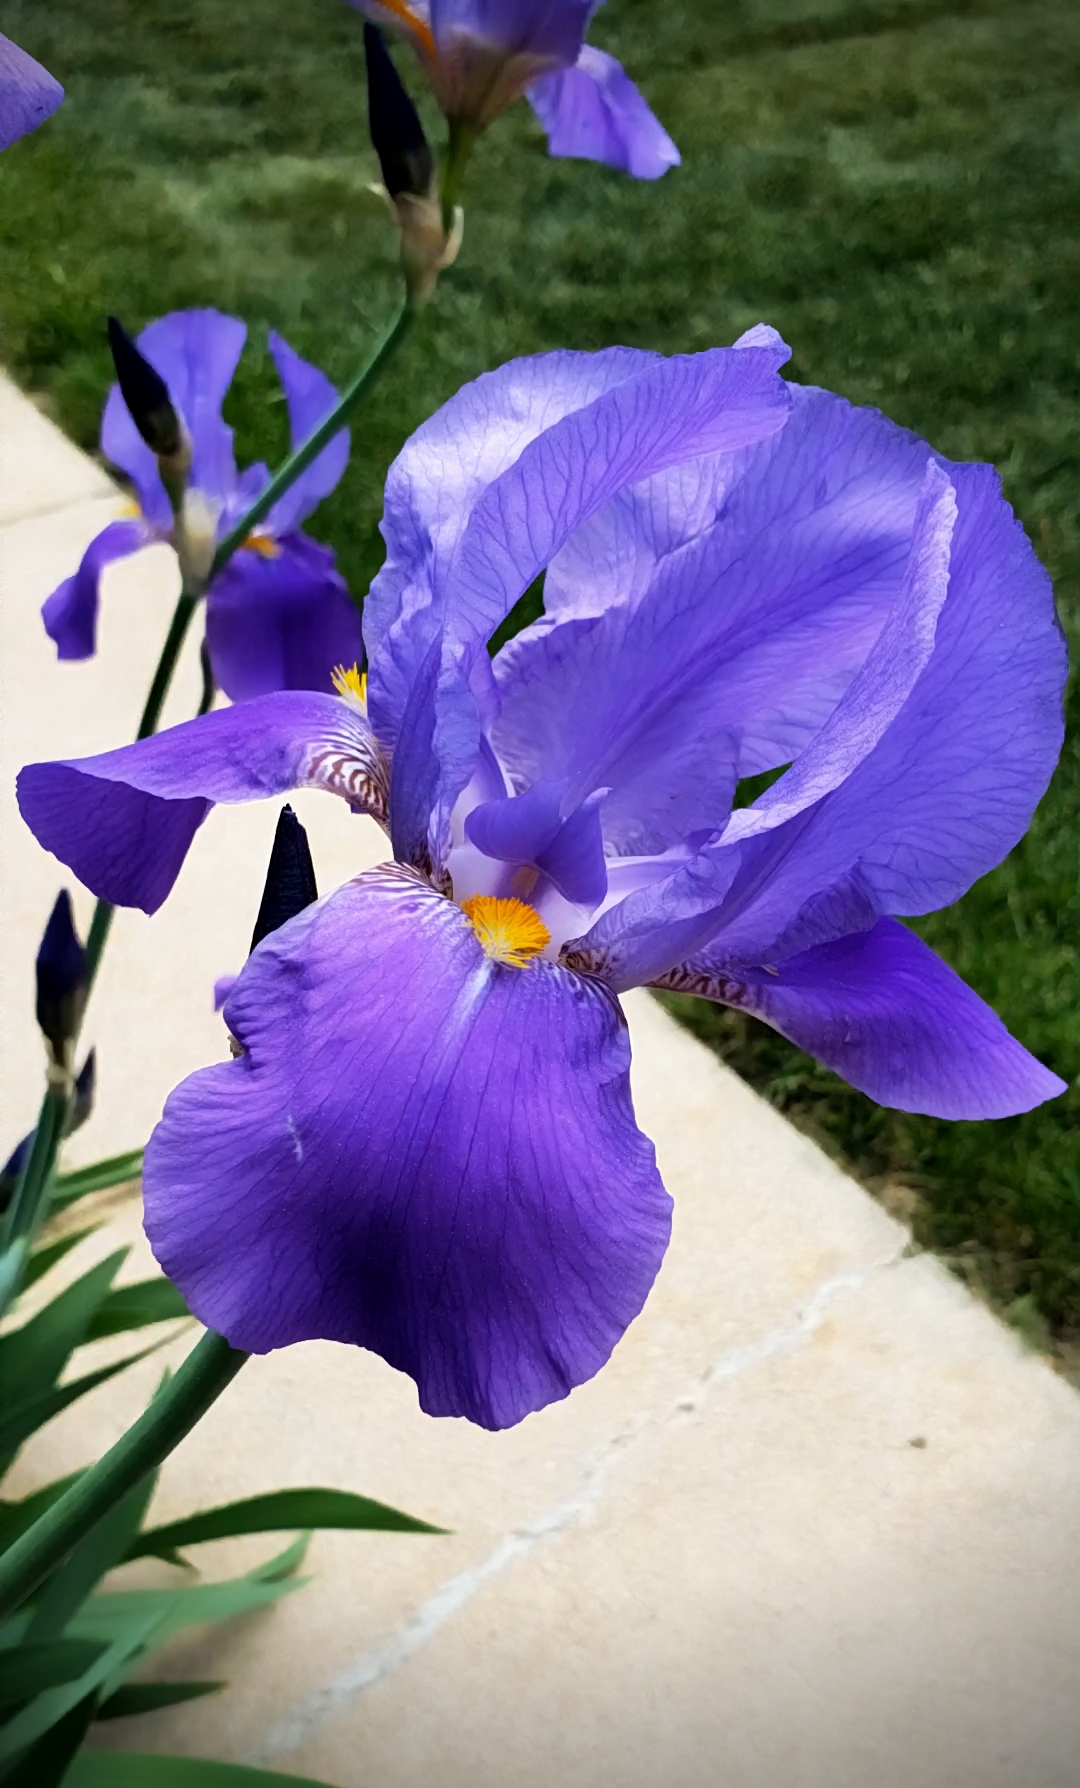 00-iris-blue-20180523_162233_captureA